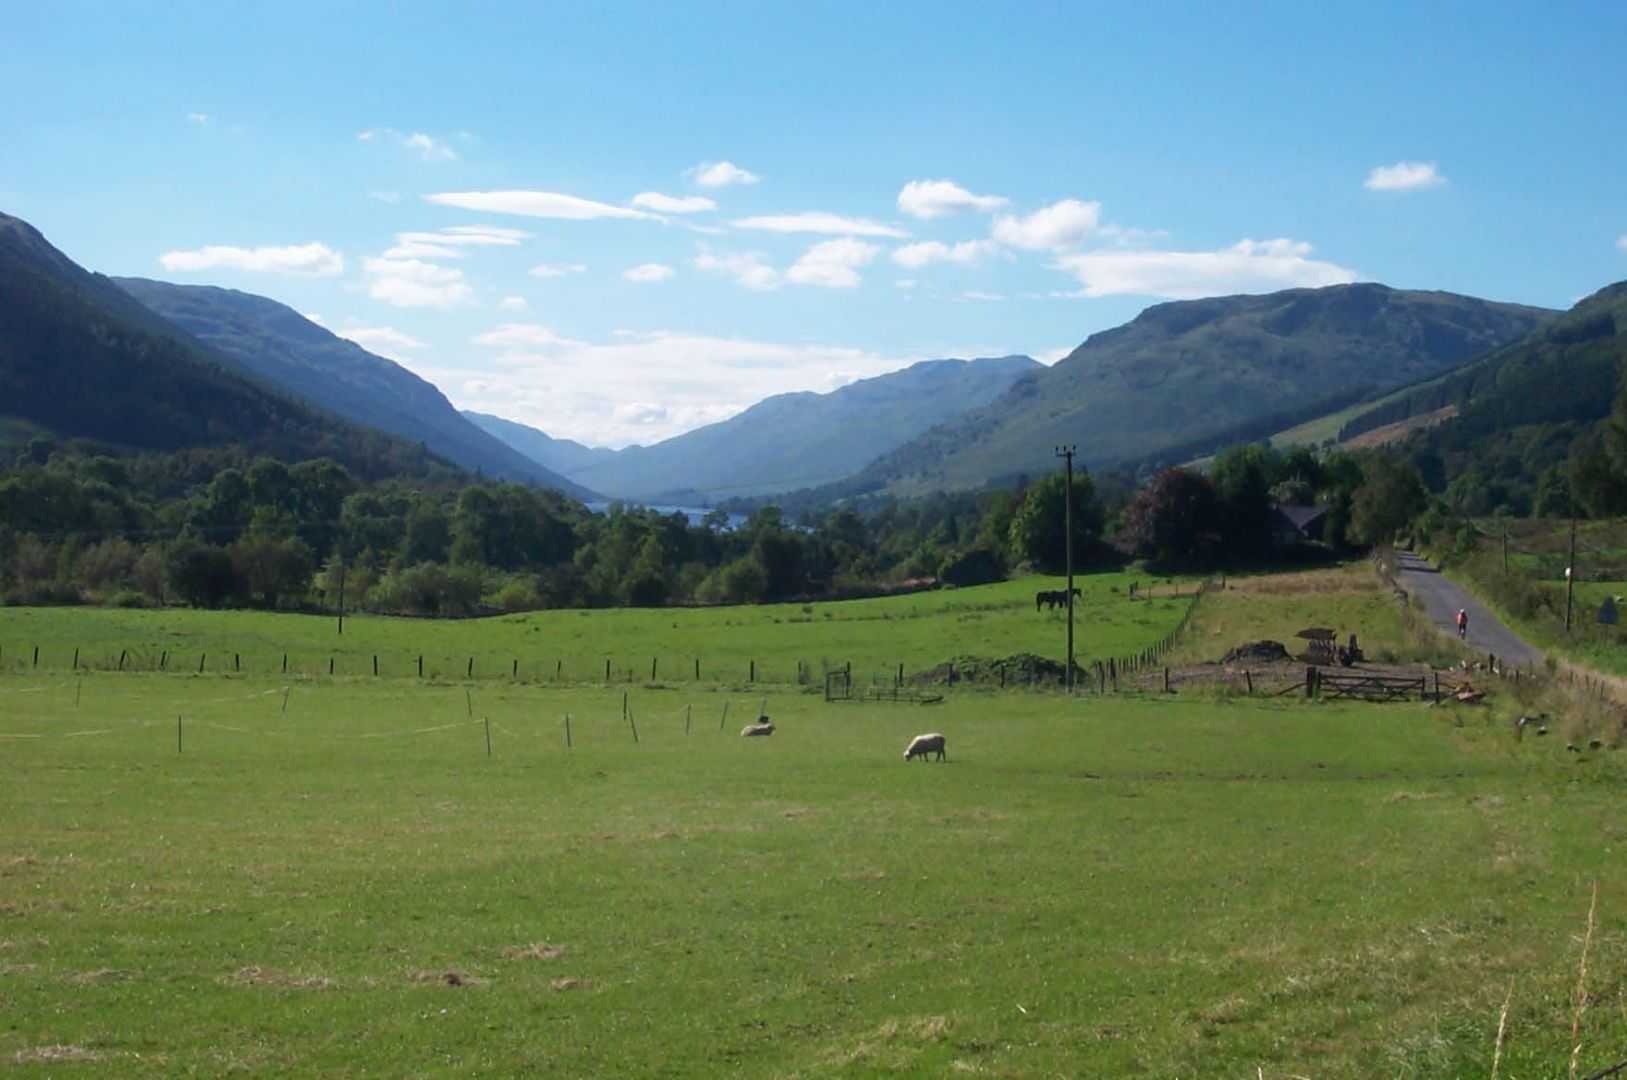 lochs n glens.jpg - UK - Scotland - Lochs and Glens - Self-Guided Leisure Cycling Holiday - Leisure Cycling